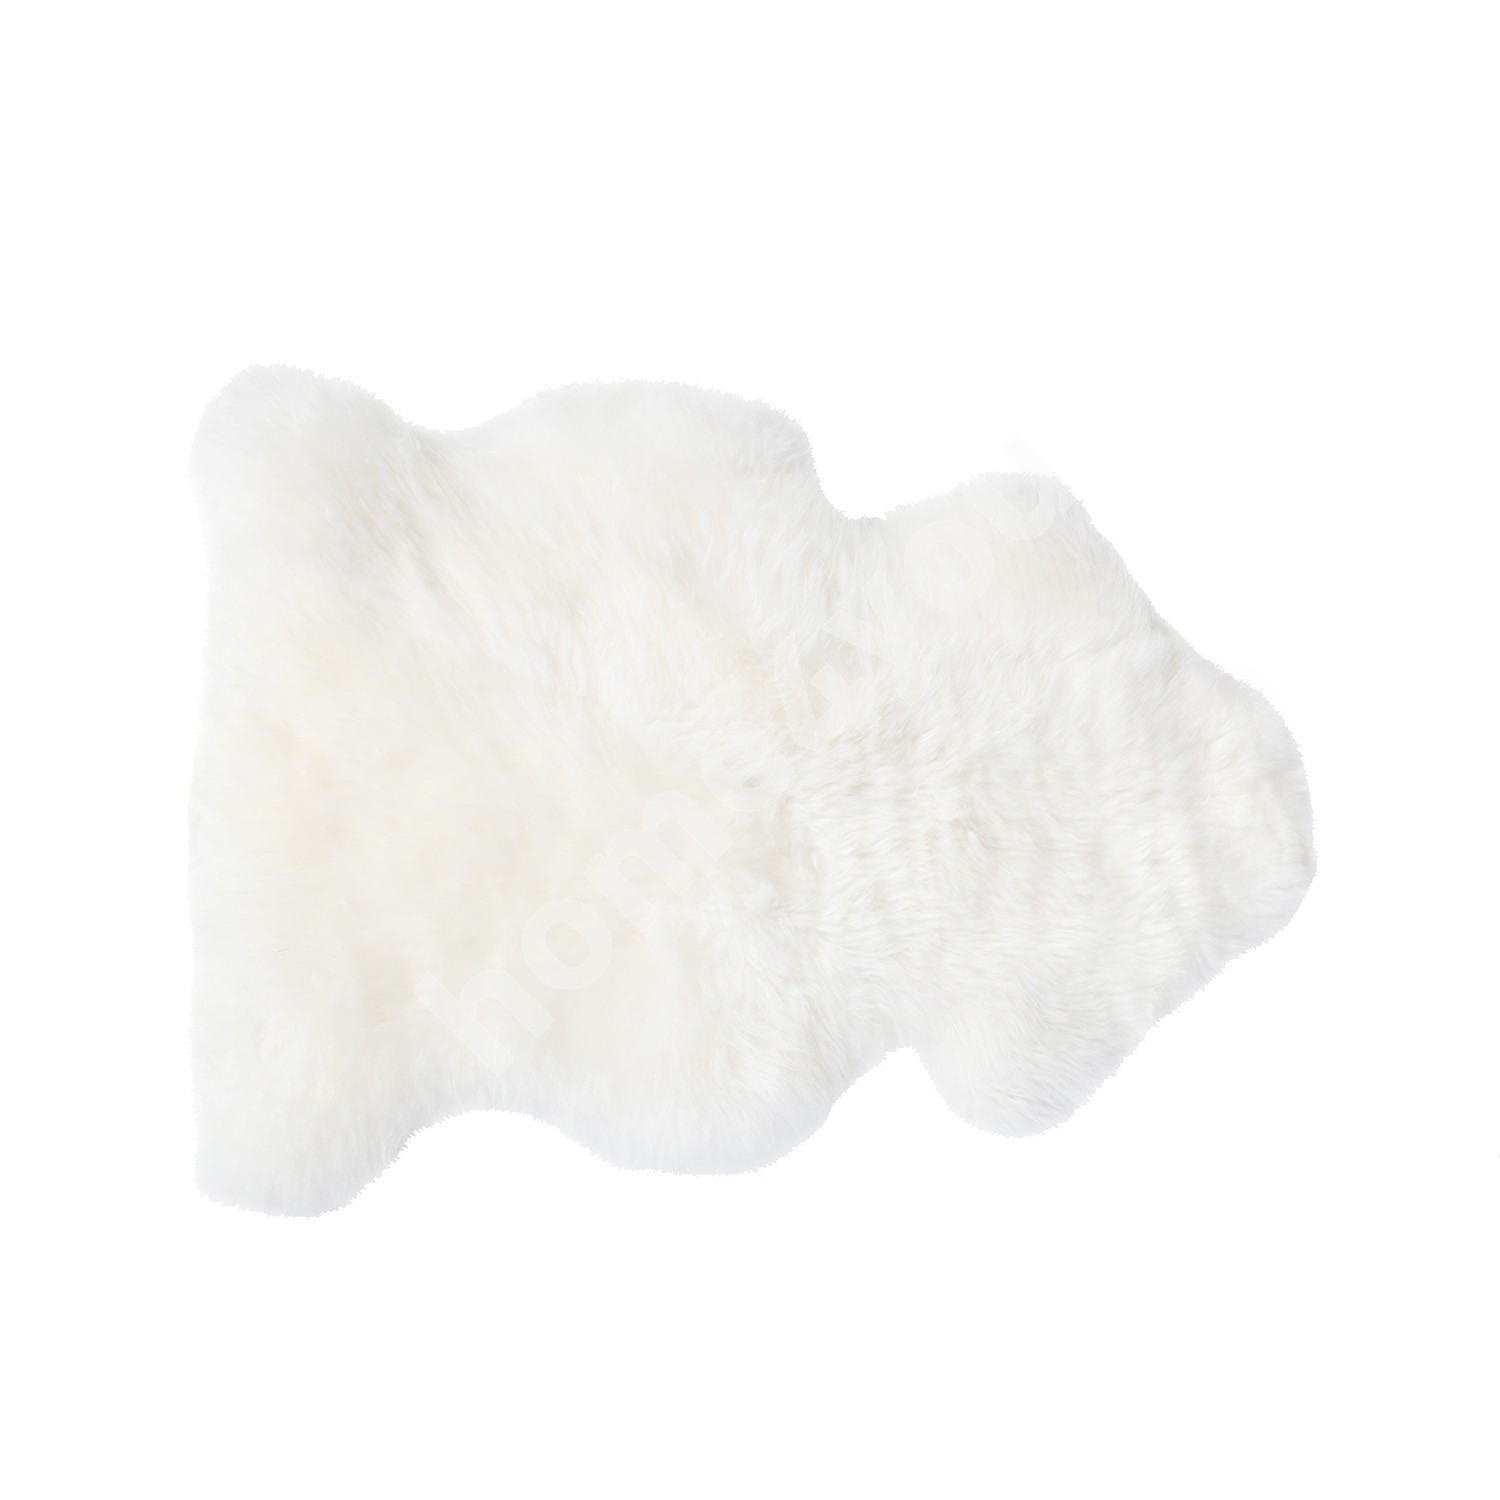 Sheepskin BRAZIL ca 70-80cm, natural, white,